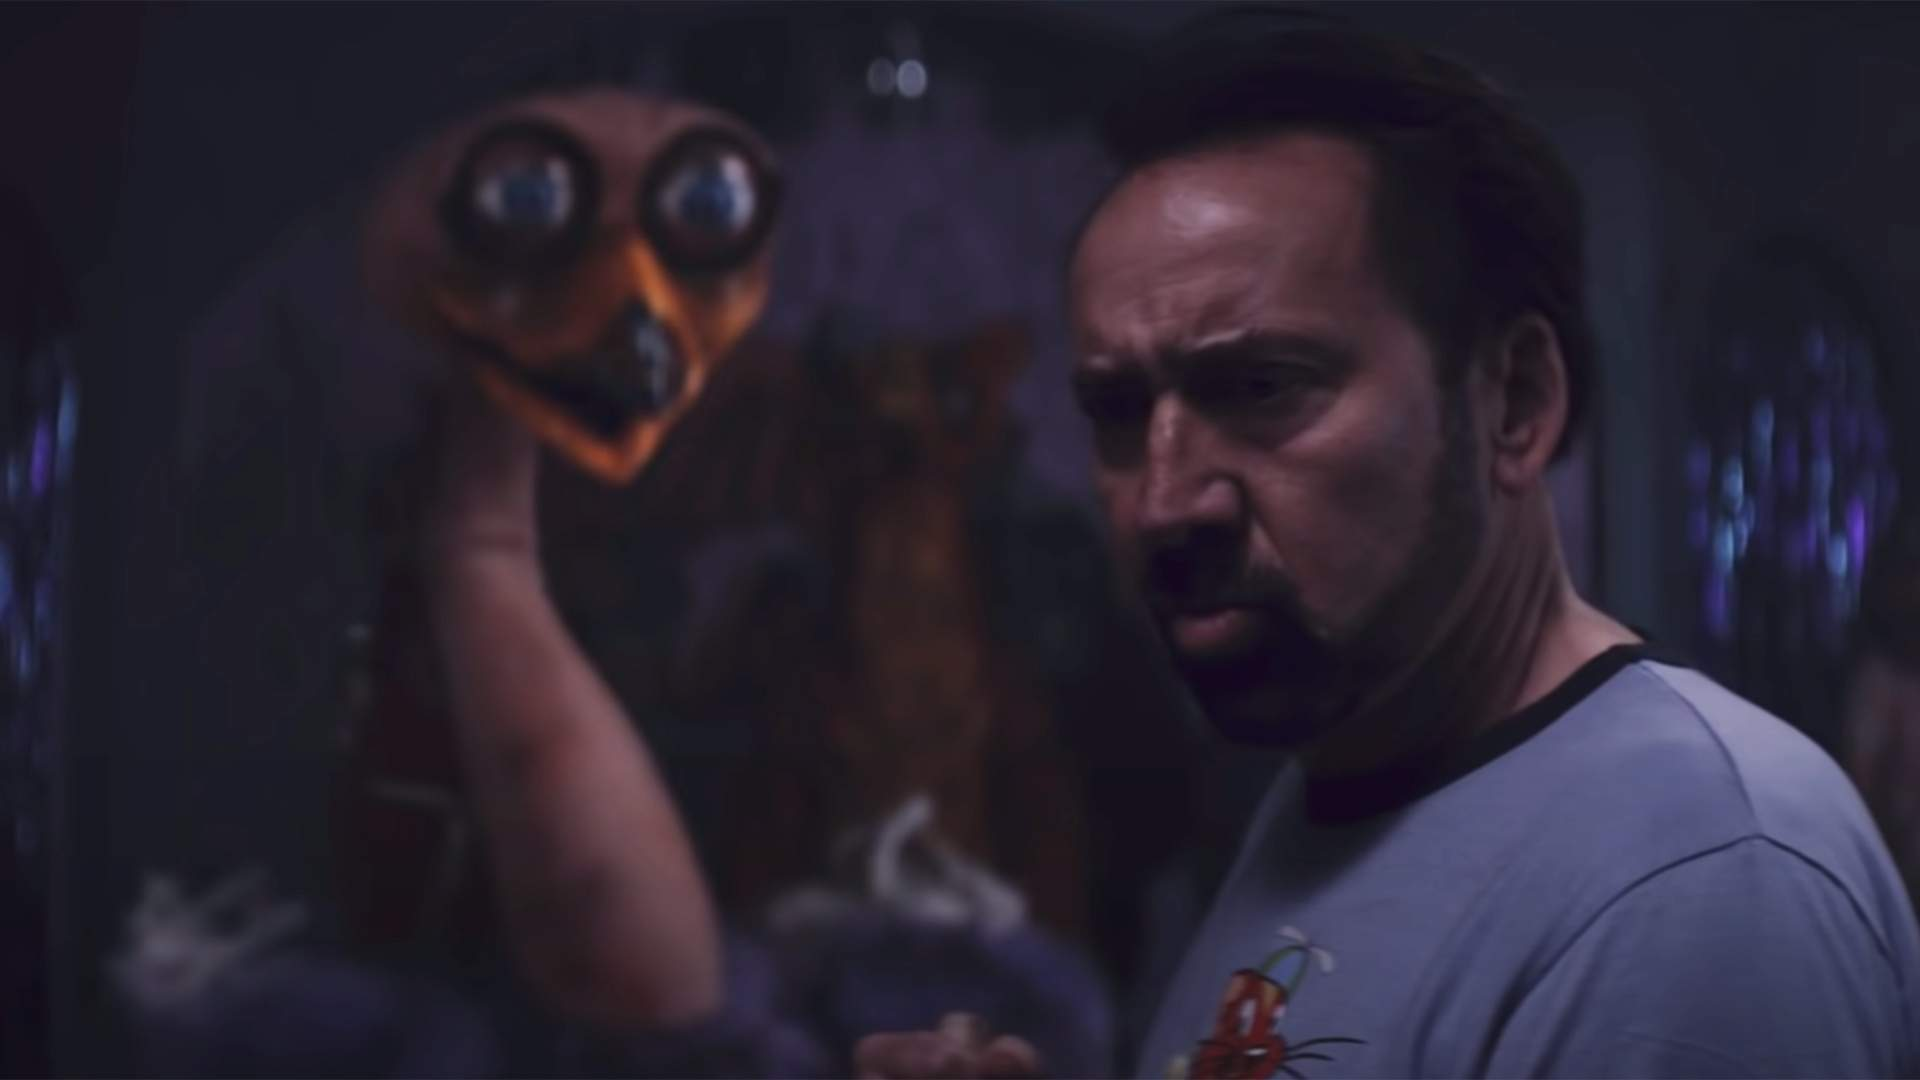 Nicolas Cage Tries to Survive a Possessed Fun Park in the Trailer for 'Willy's Wonderland'